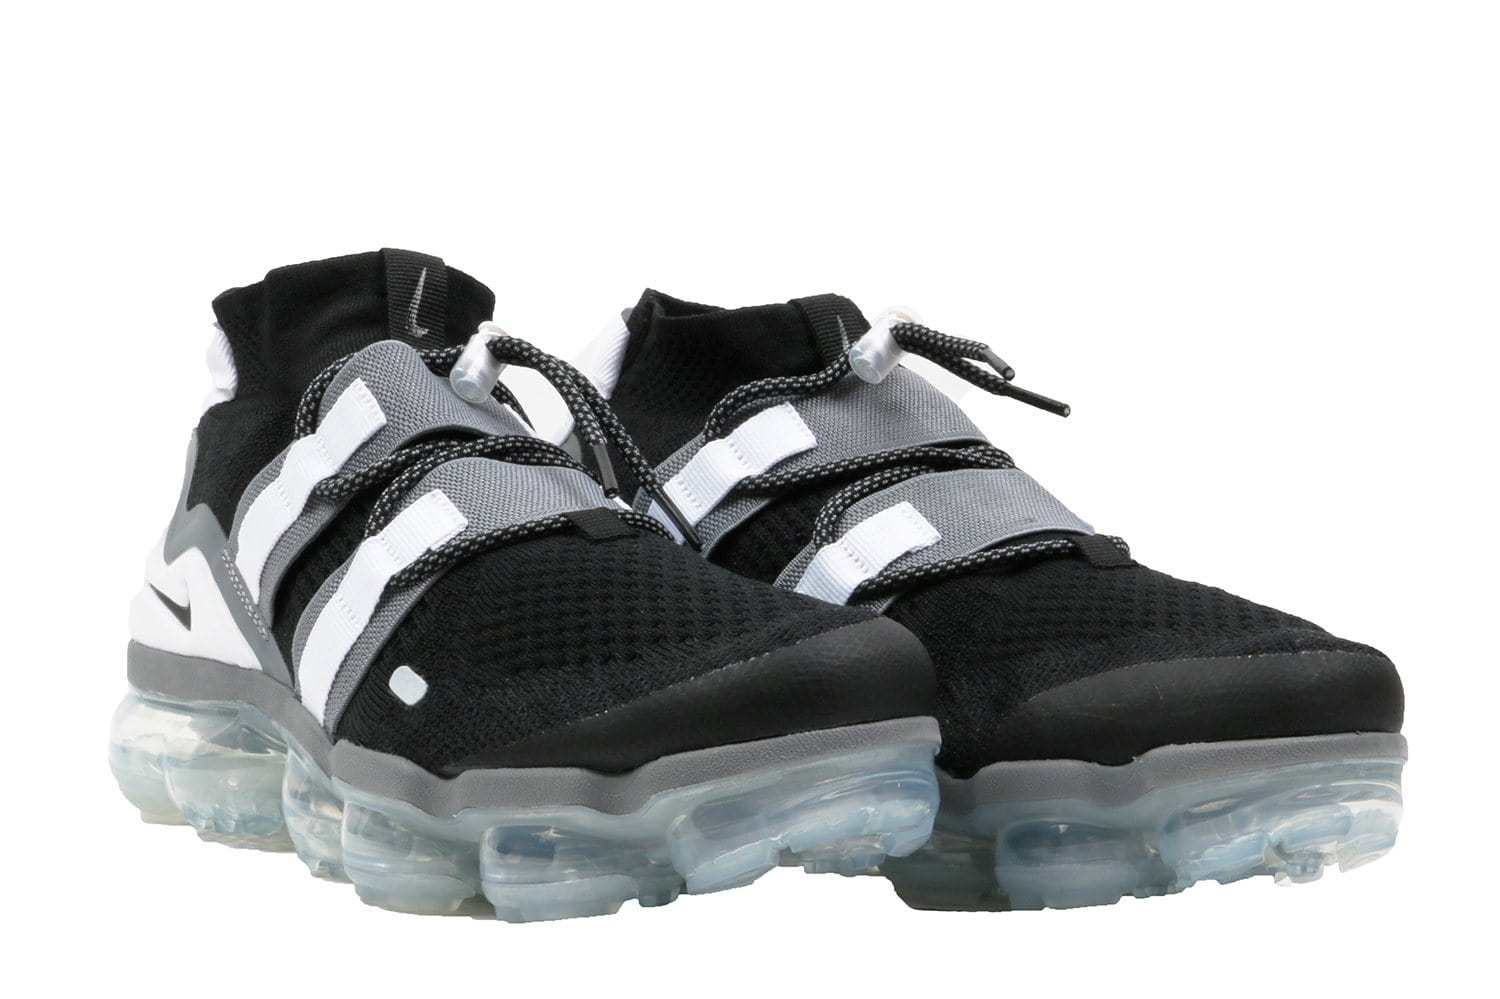 separation shoes 3906d 1cceb AIR VAPORMAX FLYKNIT UTILITY-AH6834-003